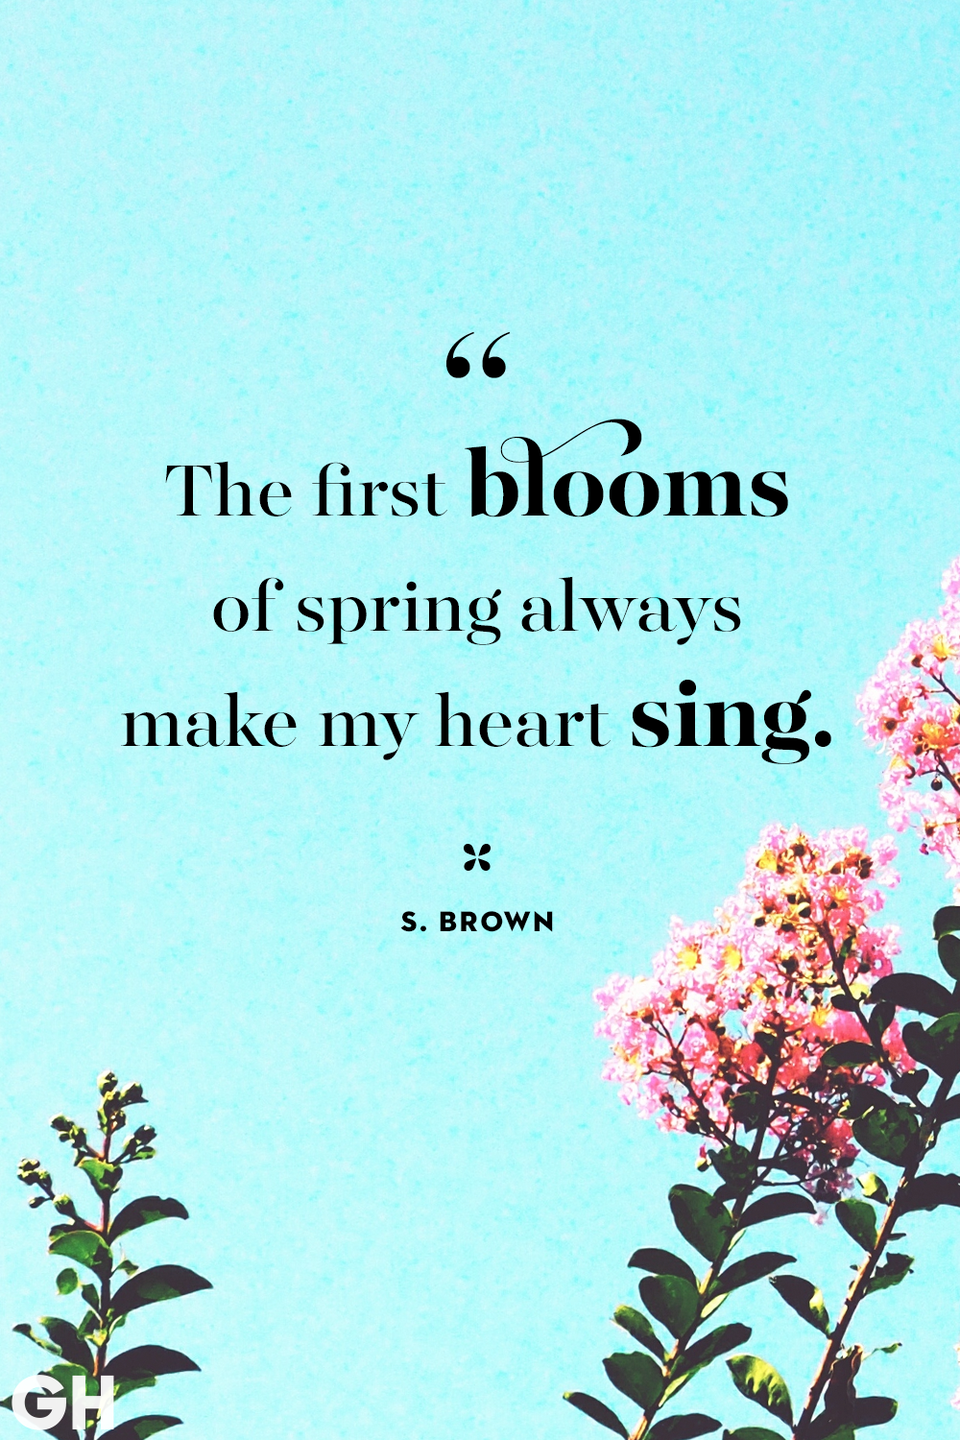 <p>The first blooms of spring always make my heart sing.</p>